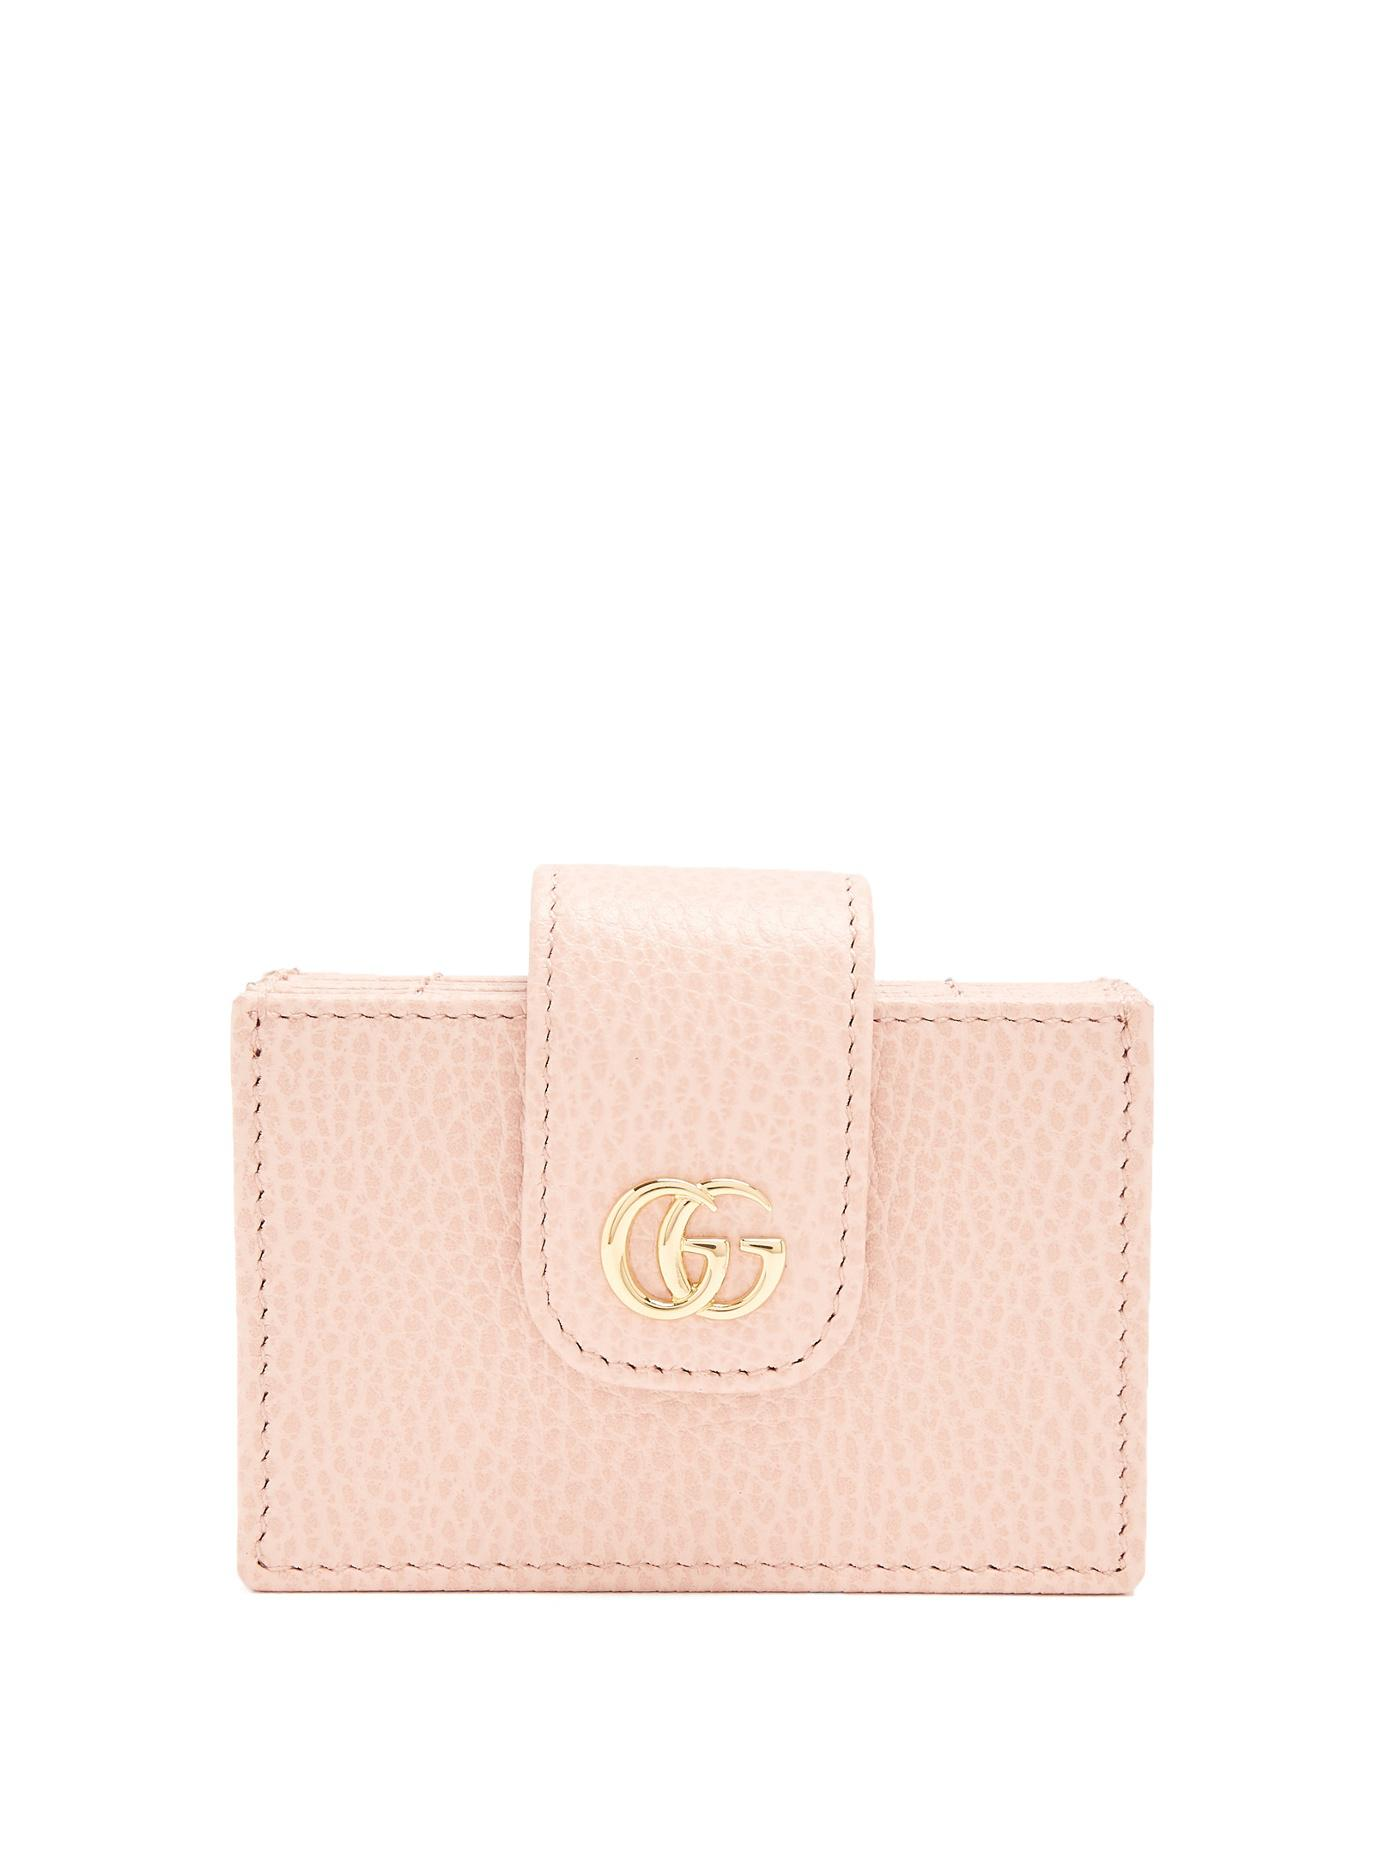 Gucci gg marmont expandable leather cardholder in pink lyst gucci womens pink gg marmont expandable leather cardholder magicingreecefo Images